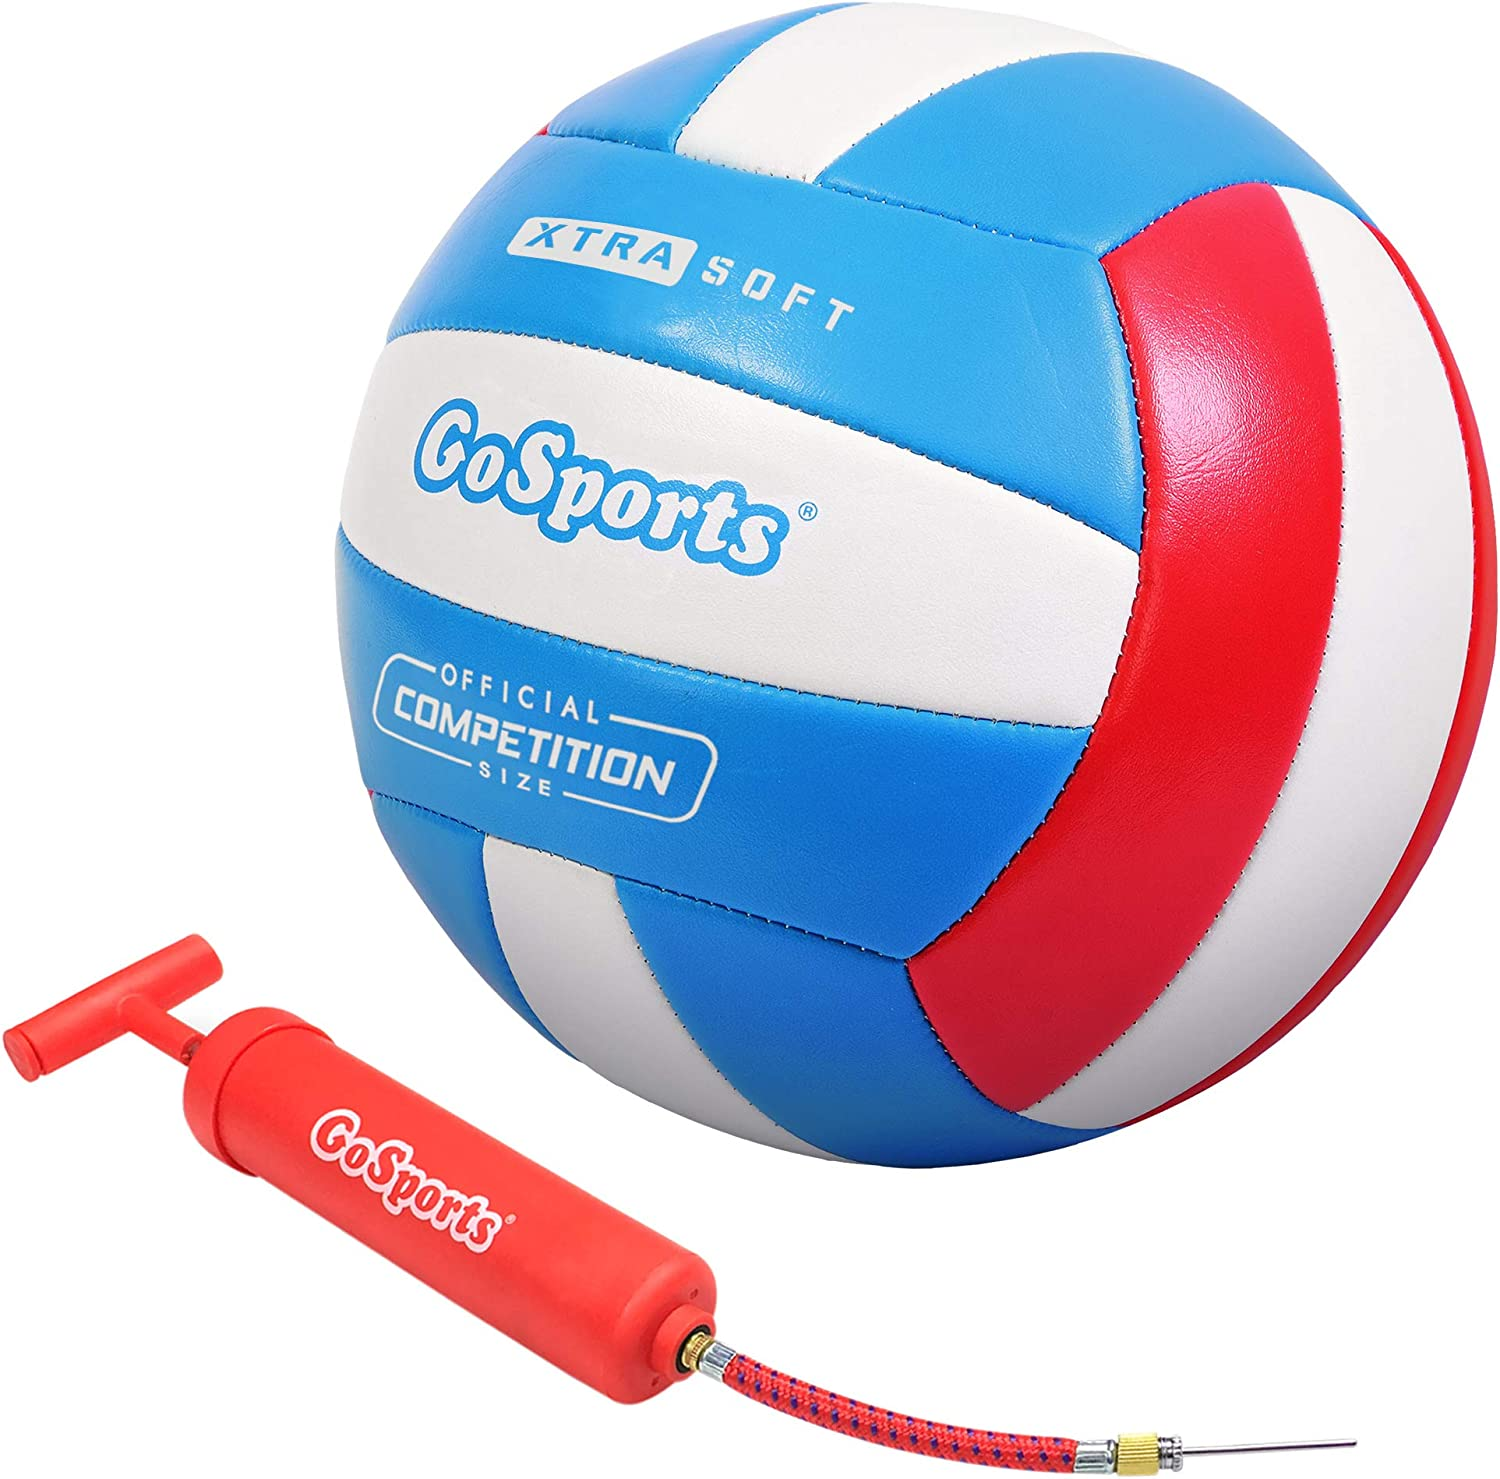 GoSports Soft Bombing new work Touch At the price of surprise Recreational Volleyball Regulation fo - Size